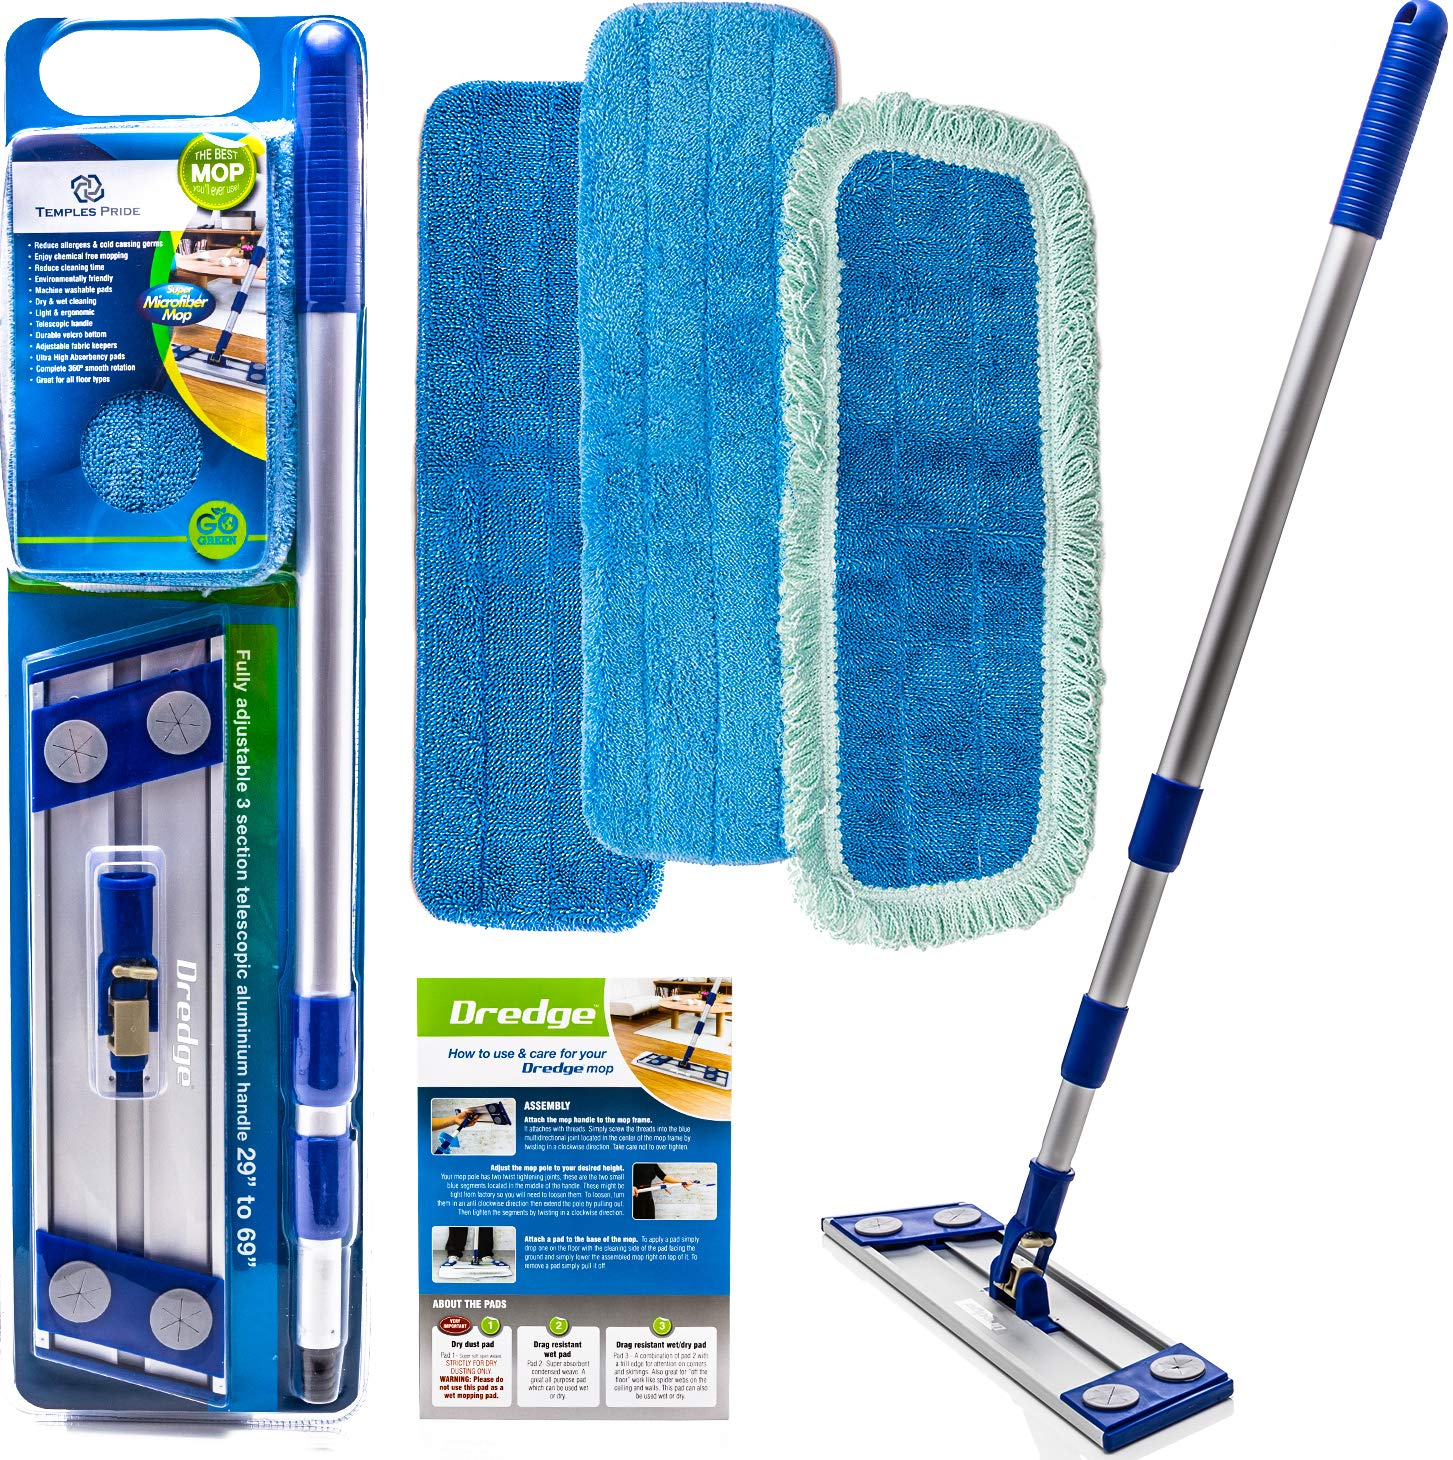 Professional Microfiber mop for Hardwood Tile Laminate & Stone Floors Dredge Best All in 1 kit Dry & Wet Cleaning +3 Advanced Drag Resistant Pads|revolutionize Your Mopping Experience by Temples Pride